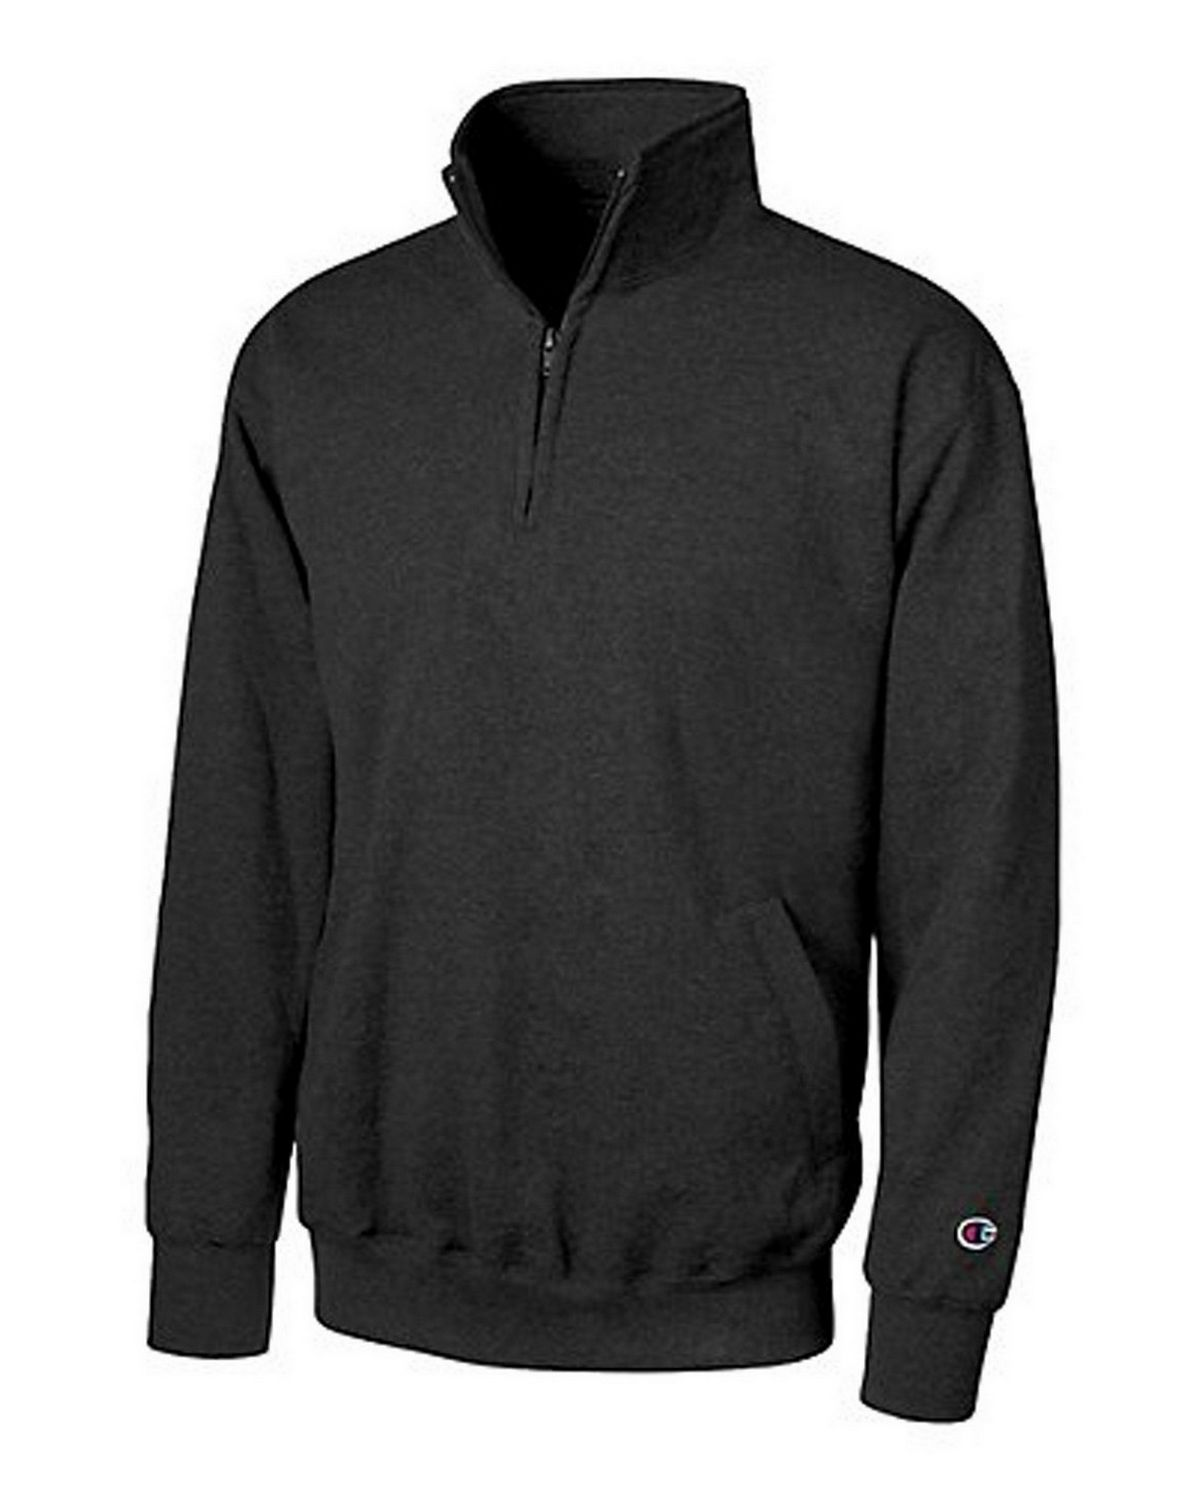 Champion S400 Eco Fleece 1/4 Zip - Black - S S400